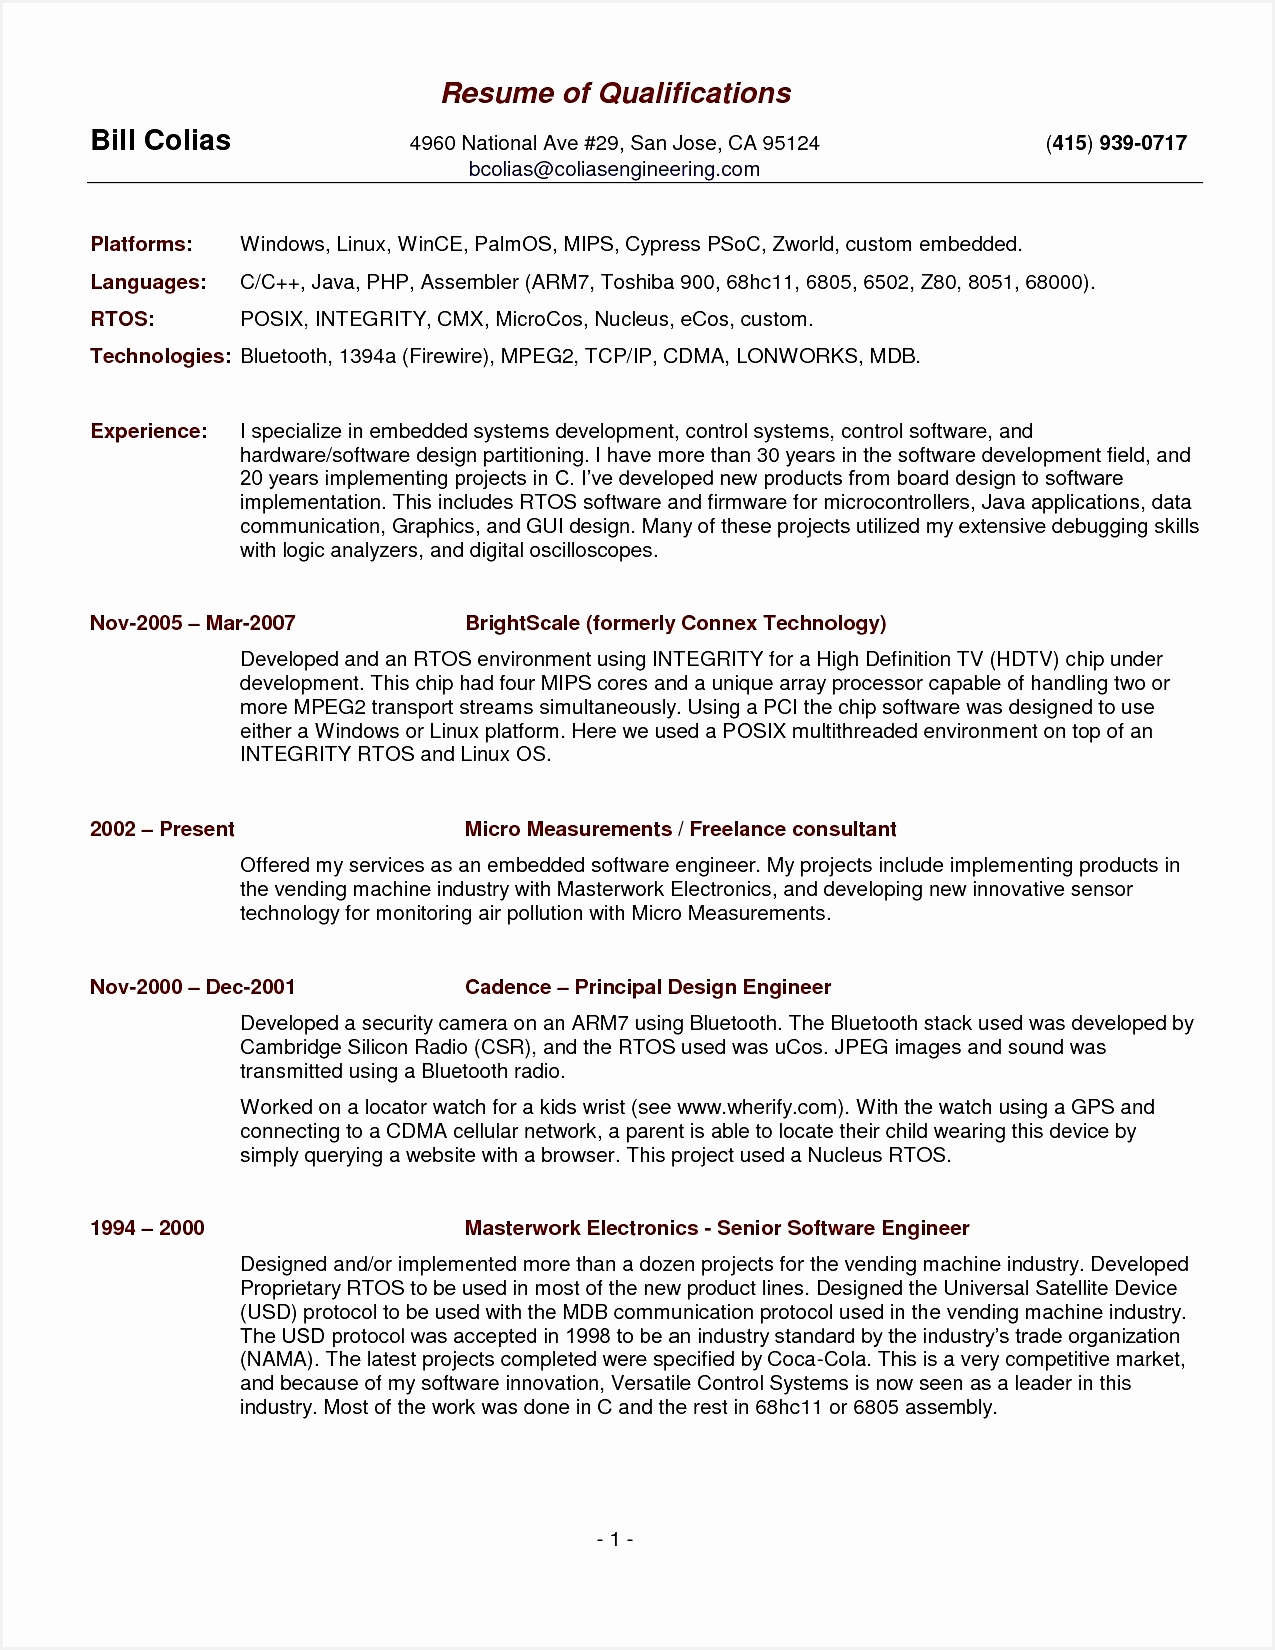 Resume Forat Beautiful Best Pr Resume Template Elegant Dictionary Template 0d Archives16501275